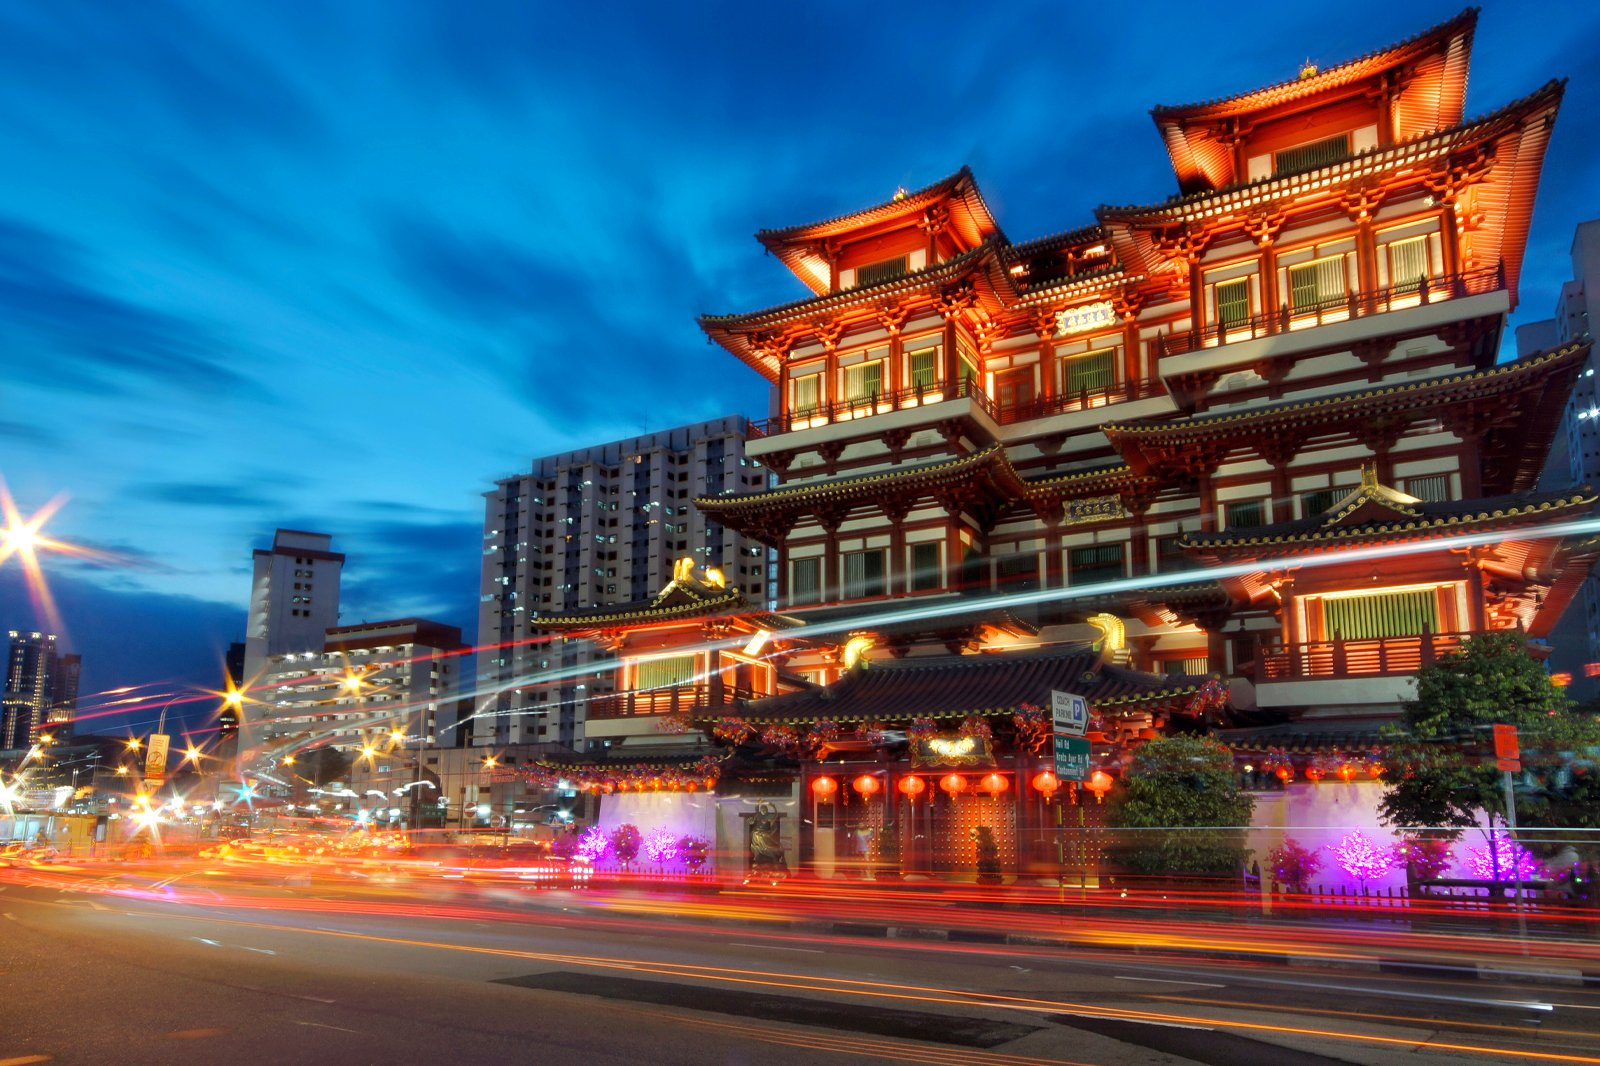 12 Best Night Spots in Chinatown - Where to Go at Night in